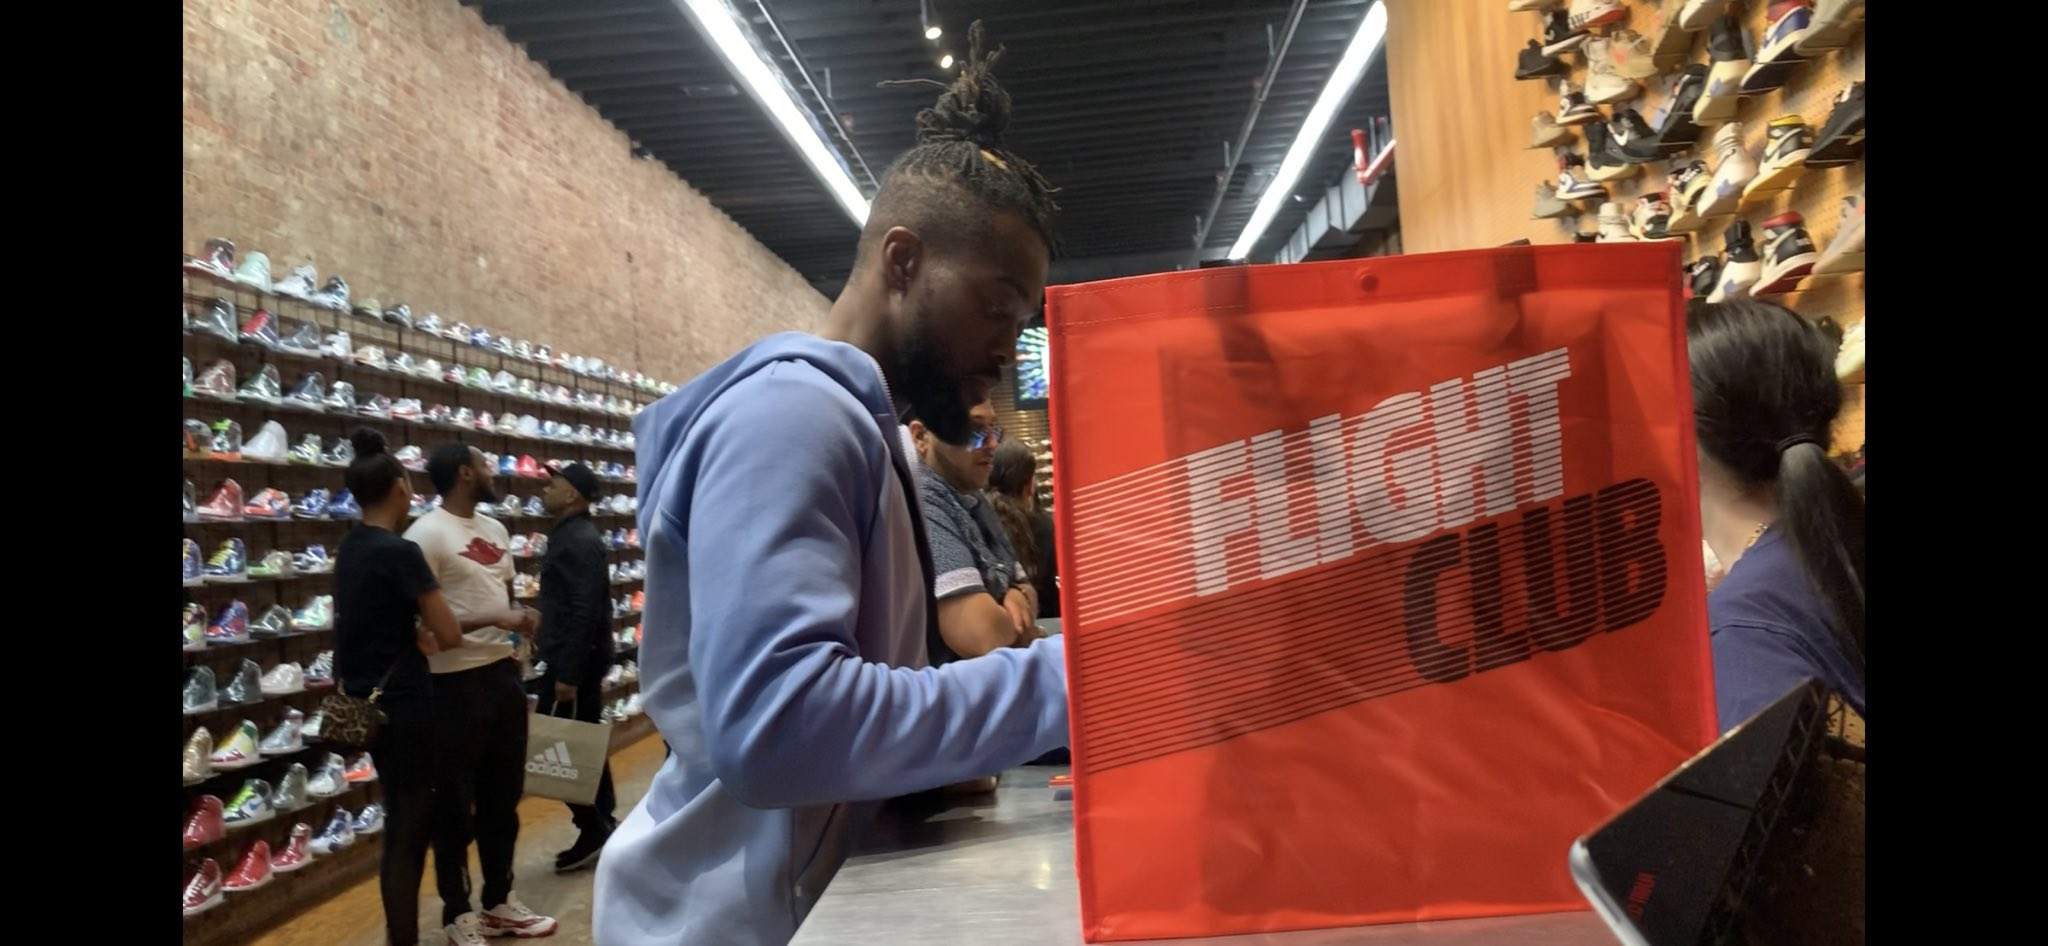 RT @TrueKofi: Touched down in NY and just picked out the perfect pair of shoes to kick ass in tomorrow. Now we're officially ready! #mitb  @flightclub https://t.co/rJYysmdrOL